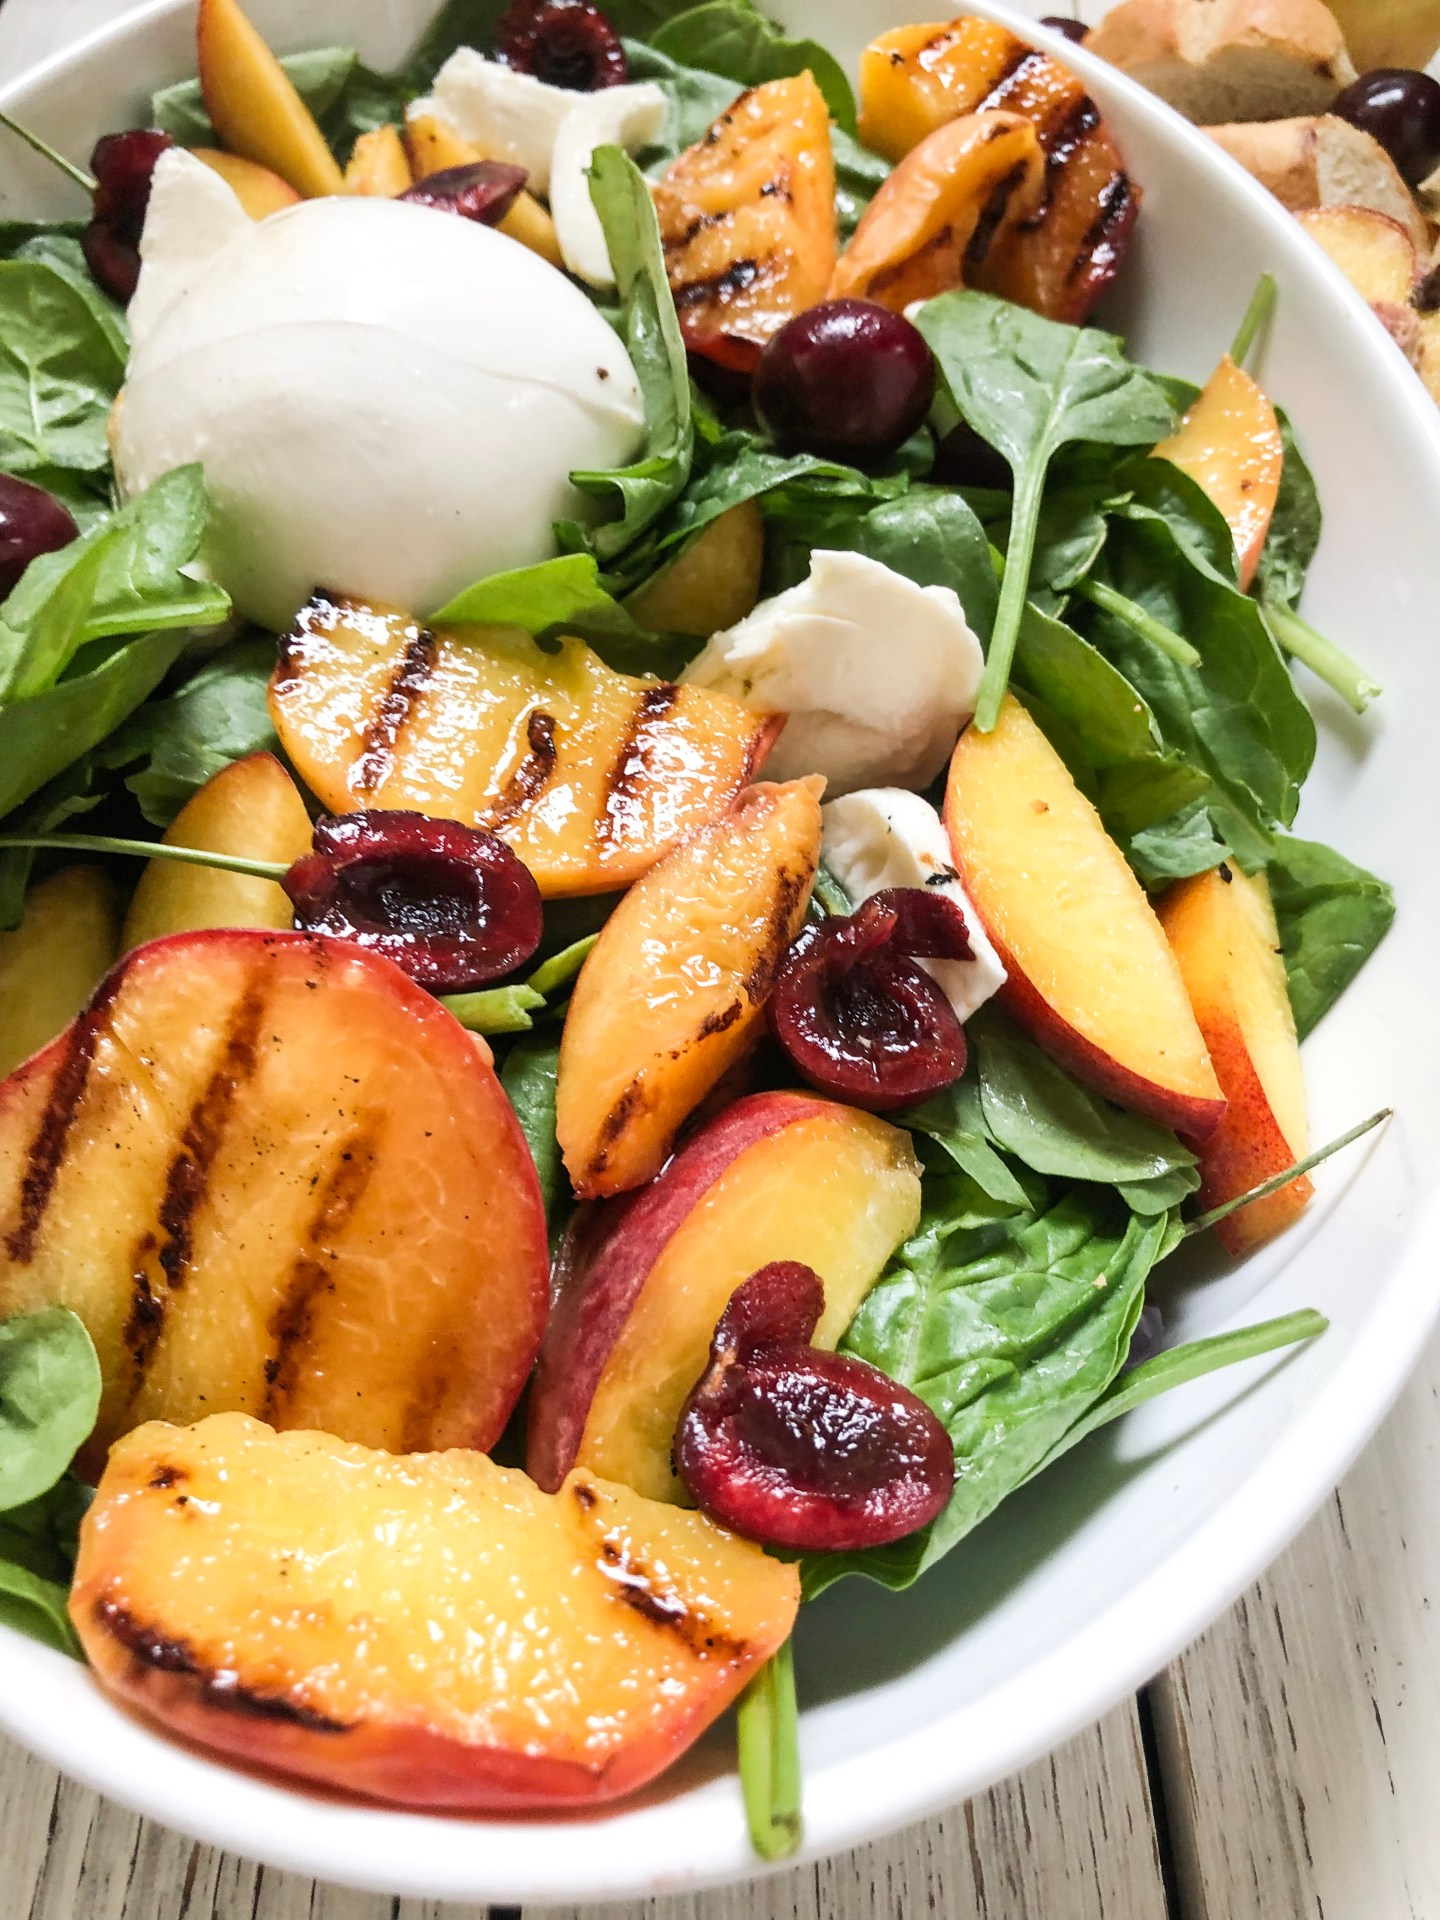 Lifestyle Blogger Chocolate & Lace shares her recipe for Grilled Peach and Burrata Salad.